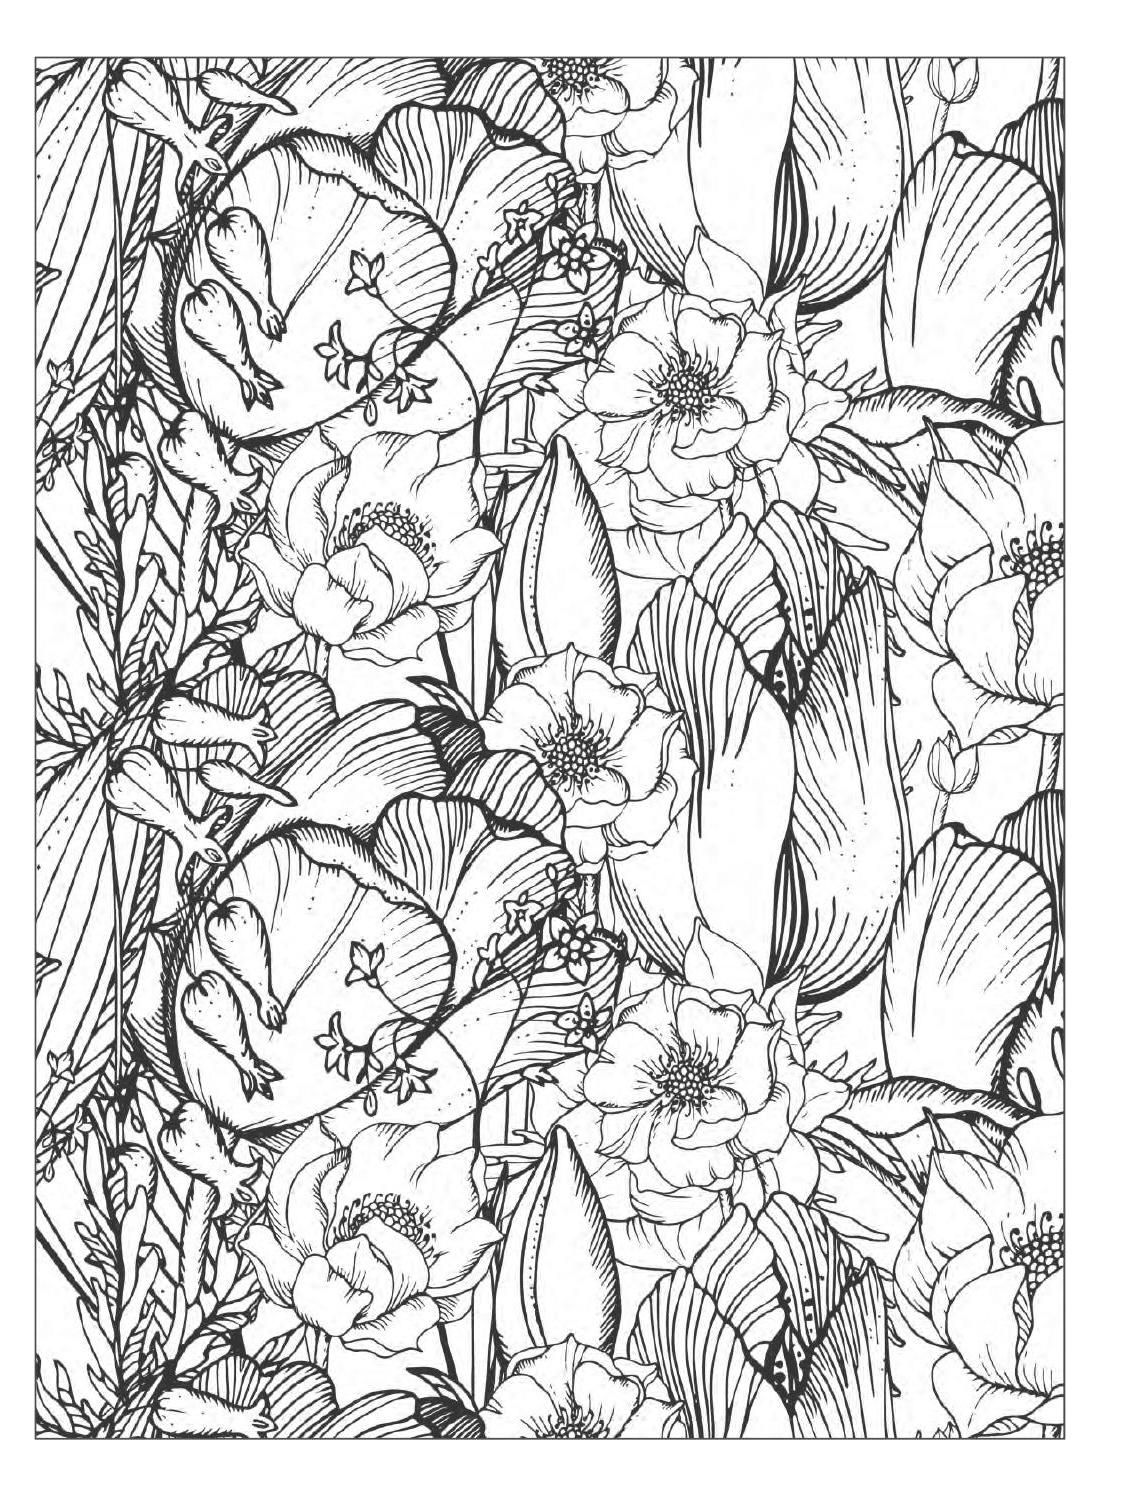 Flower designs coloring book -  Clippedonissuu From Beautiful Flowers Detailed Floral Designs Coloring Book Preview